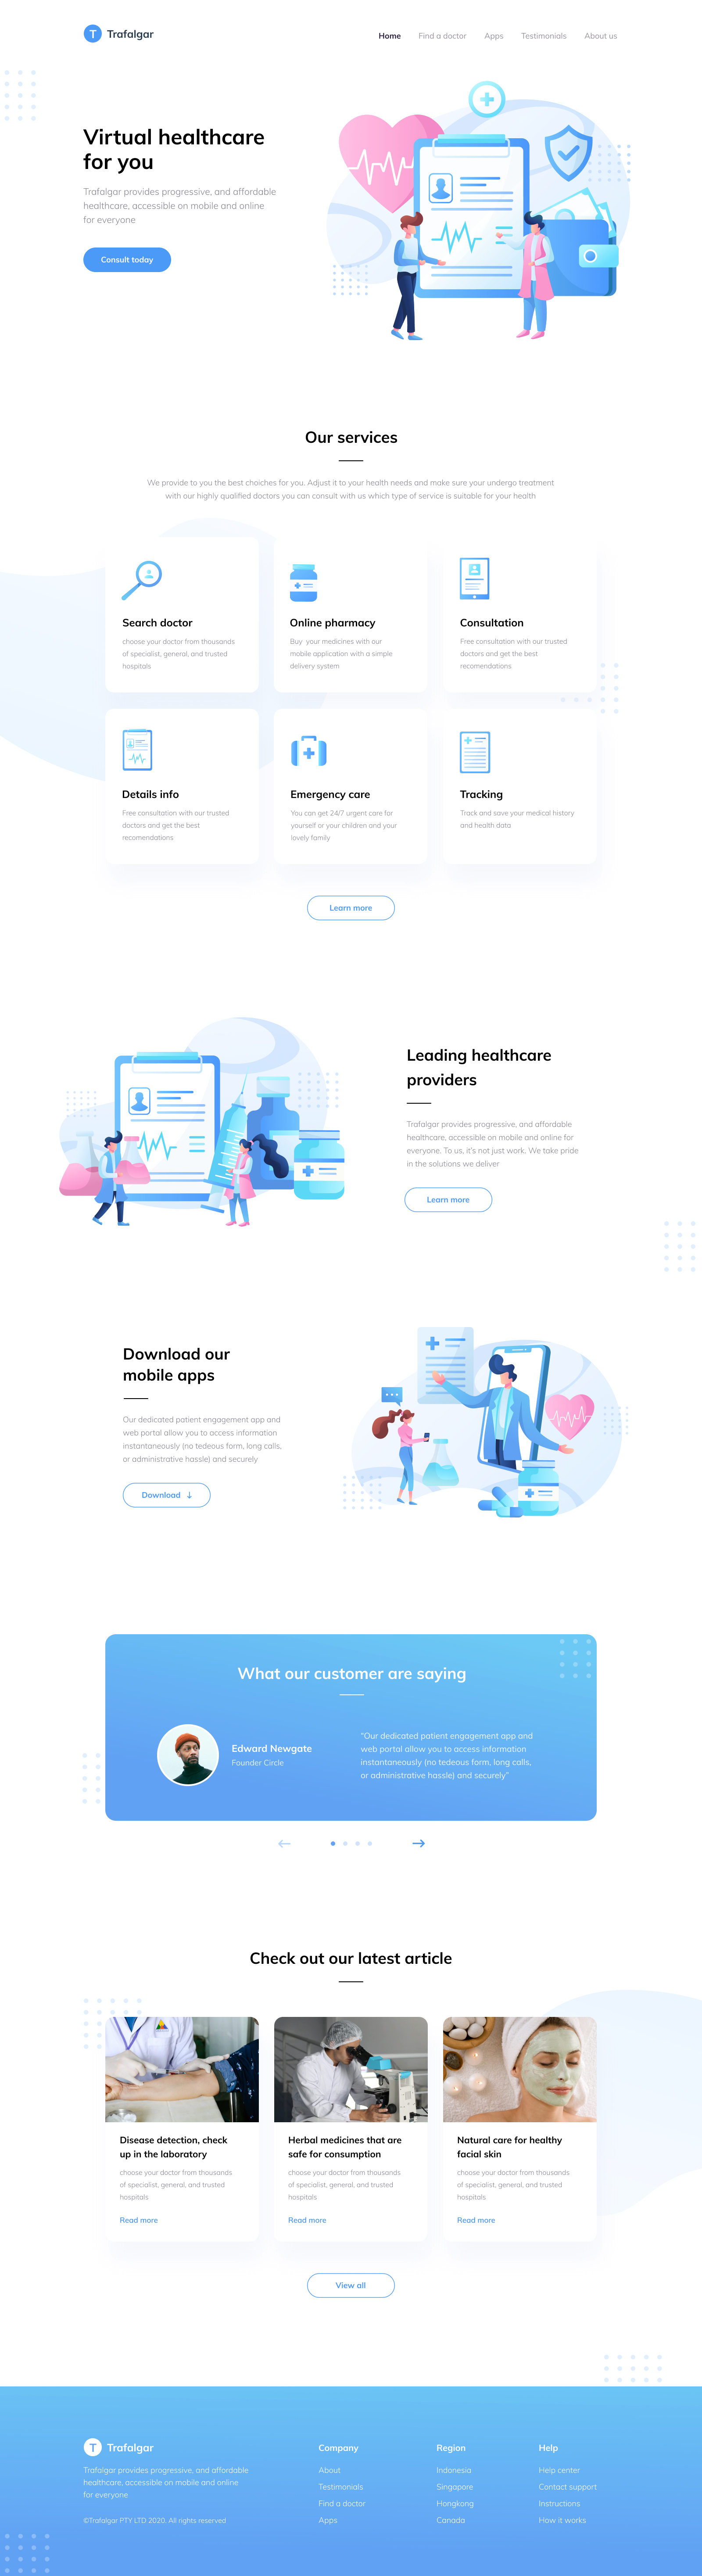 Trafalgar Landing Page for Figma - Trafalgar is a landing page for a one-stop healthcare solution. Elegant and clean landing page design for Figma.